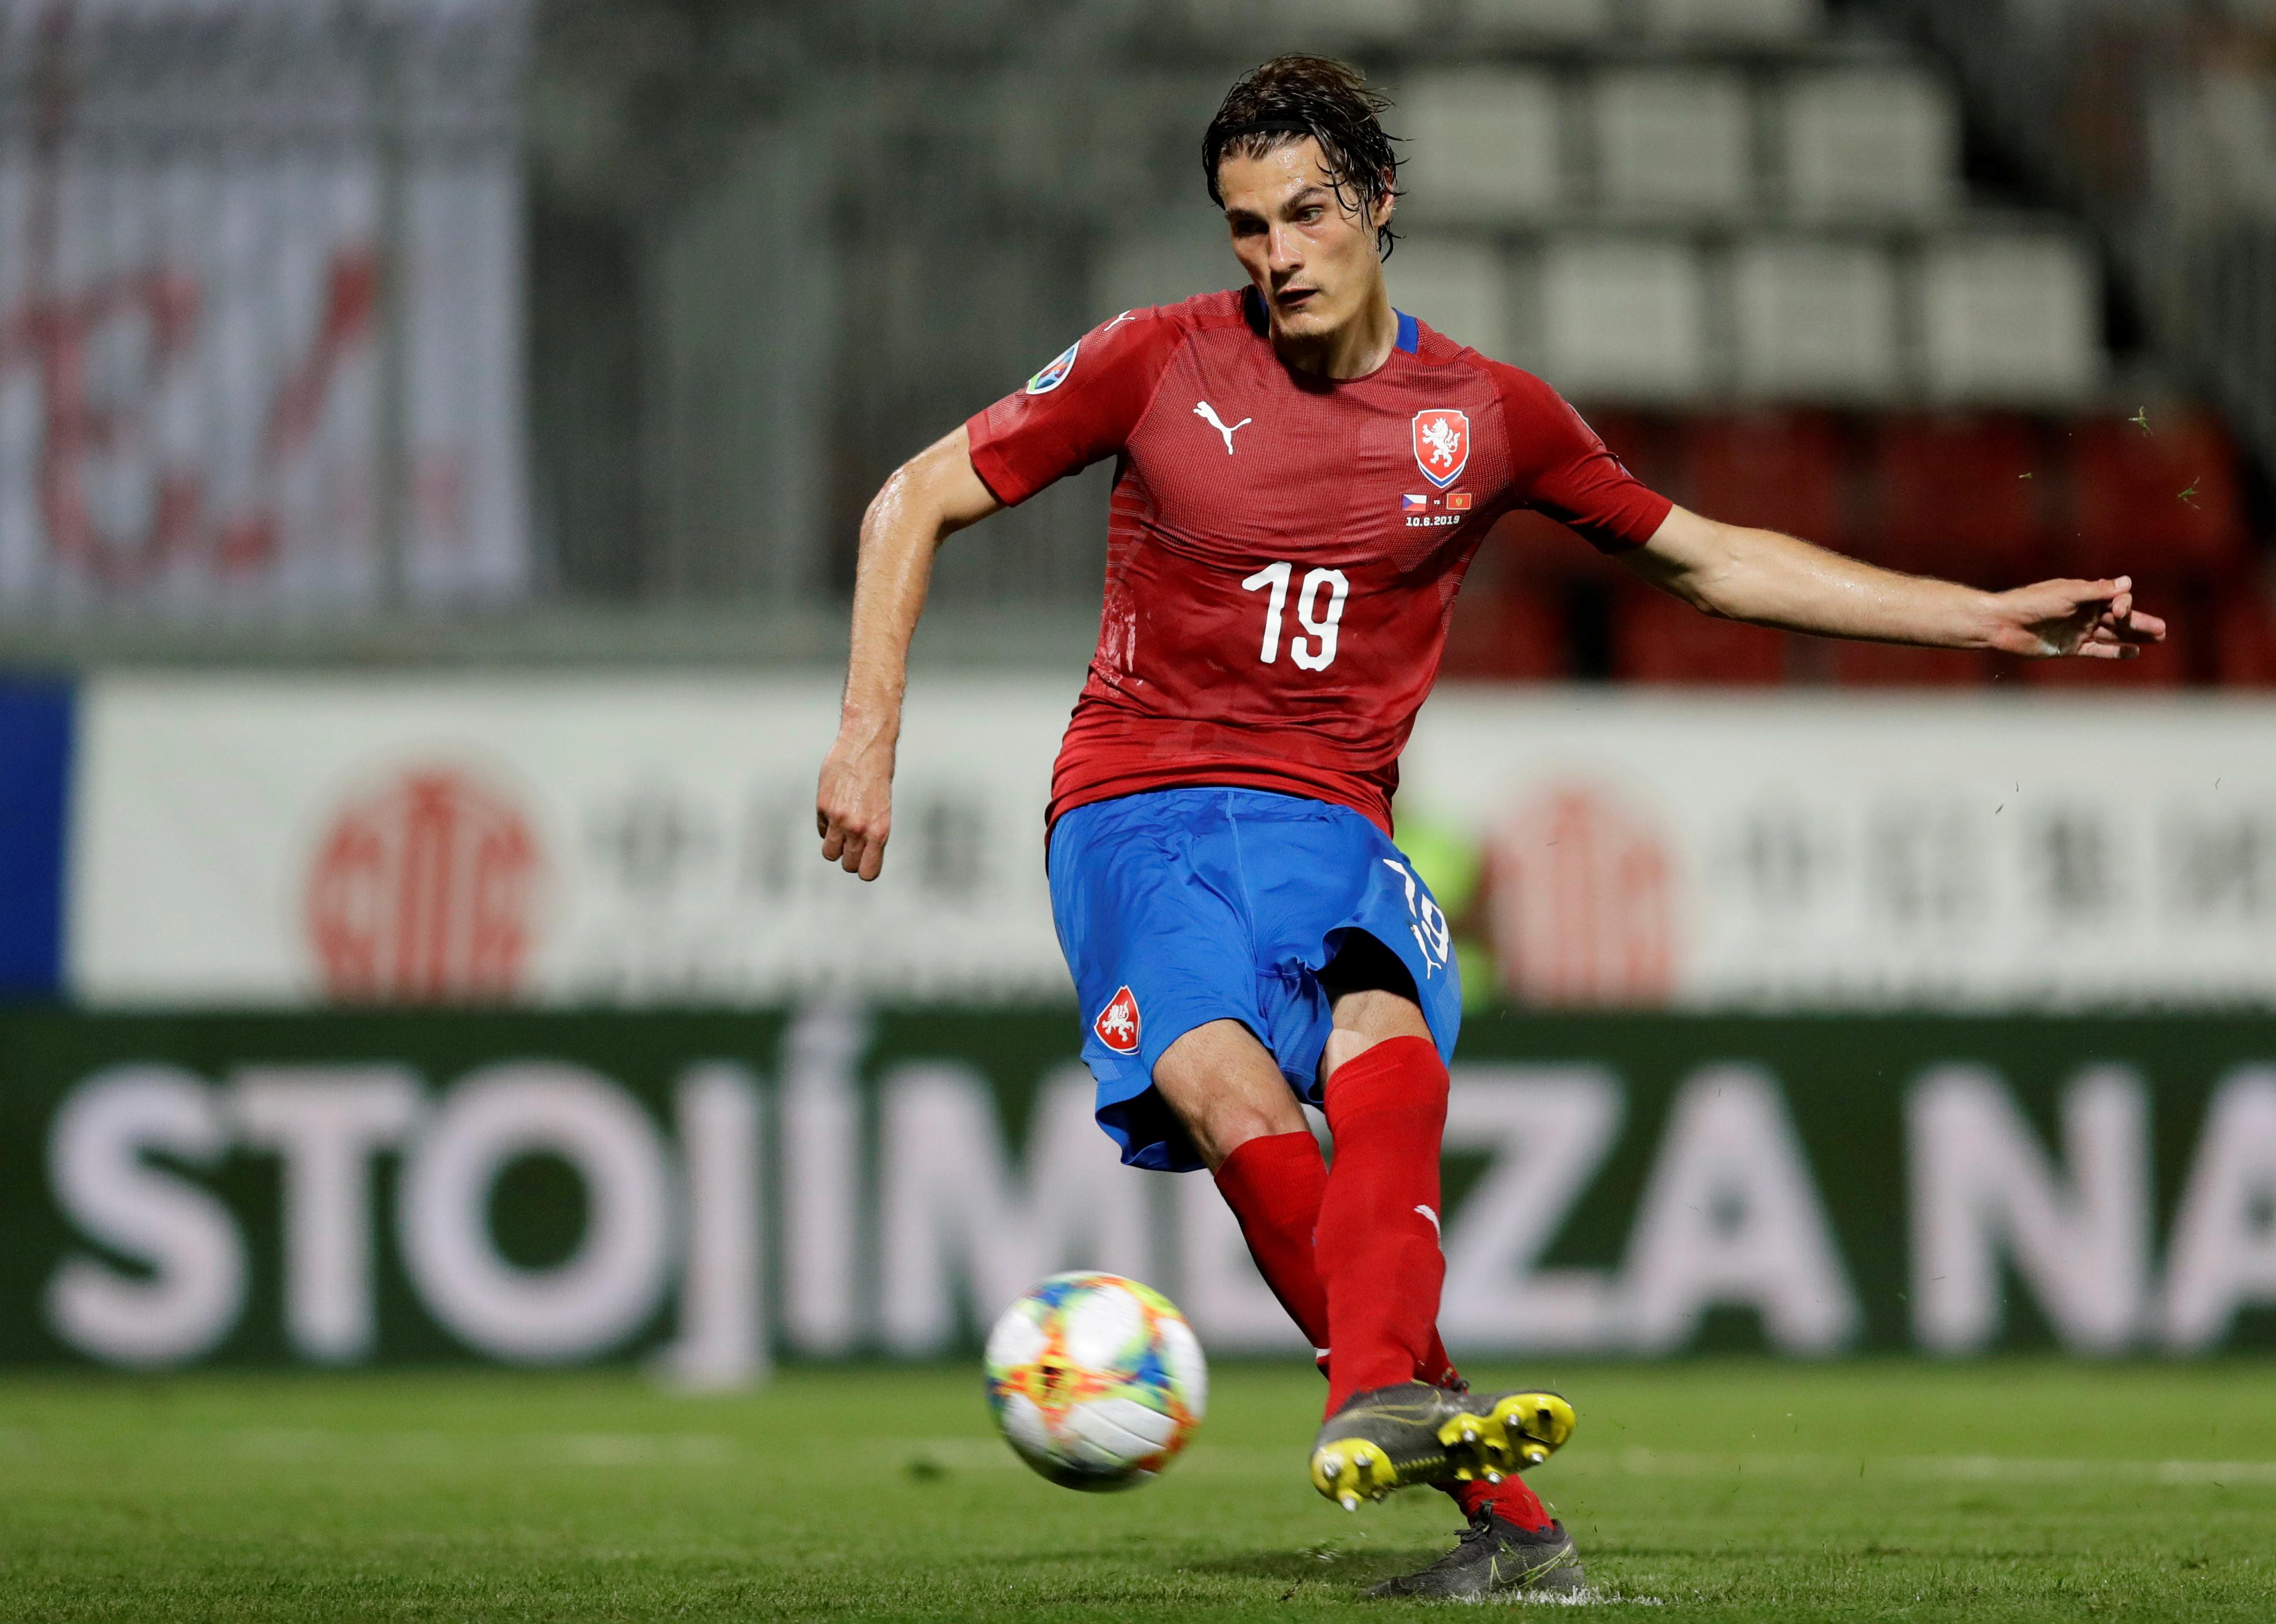 AS Roma sends forward Schick on loan to RB Leipzig